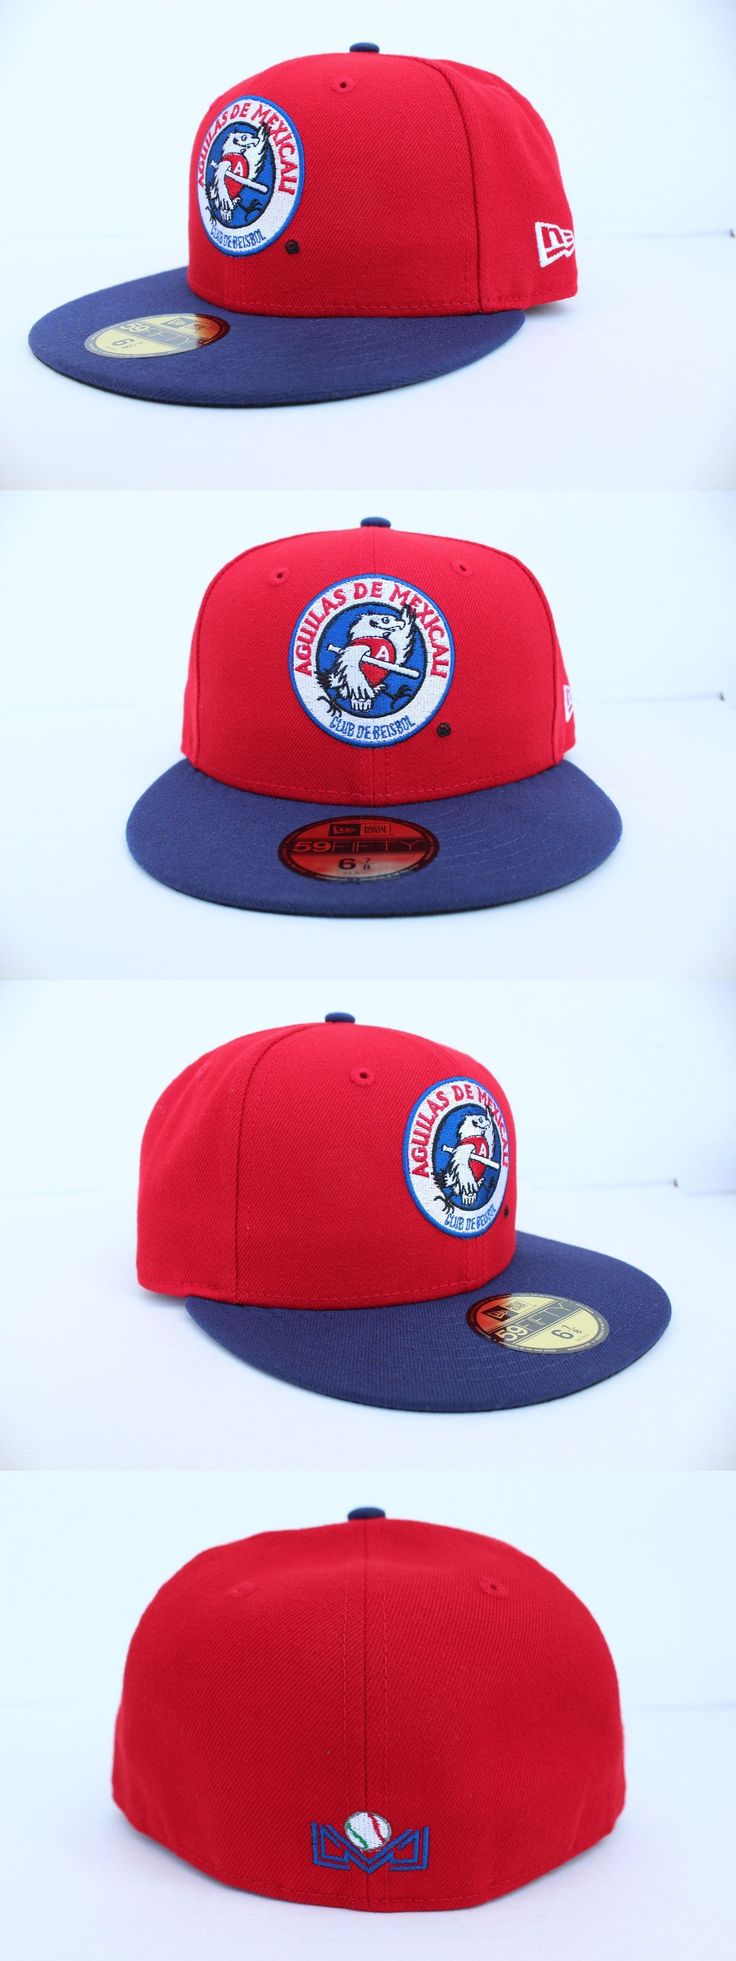 Baseball-Other 204: Aguilas De Mexicali Lmb New Era 59Fifty Alternate Fitted Hat - Red Navy -> BUY IT NOW ONLY: $39.95 on eBay!